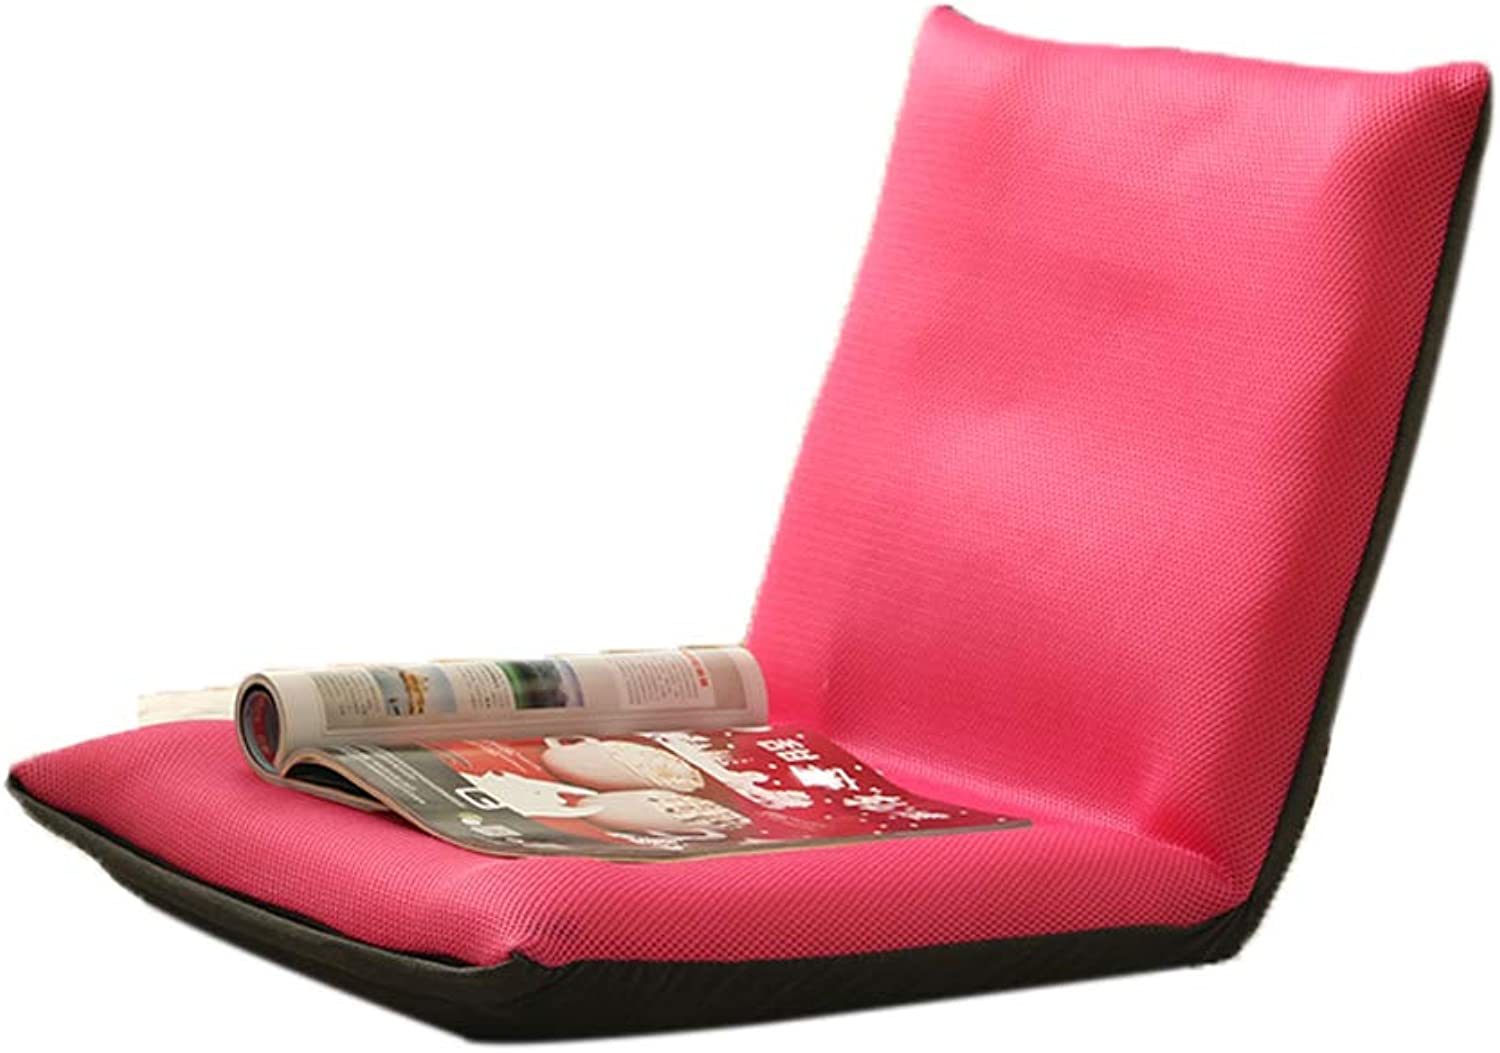 FH Lazy Couch, Tatami Foldable Small Sofa Bedroom Bedside Floor Balcony Back Floor Chair, Multi-color Choice (color   Pink, Size   Small)